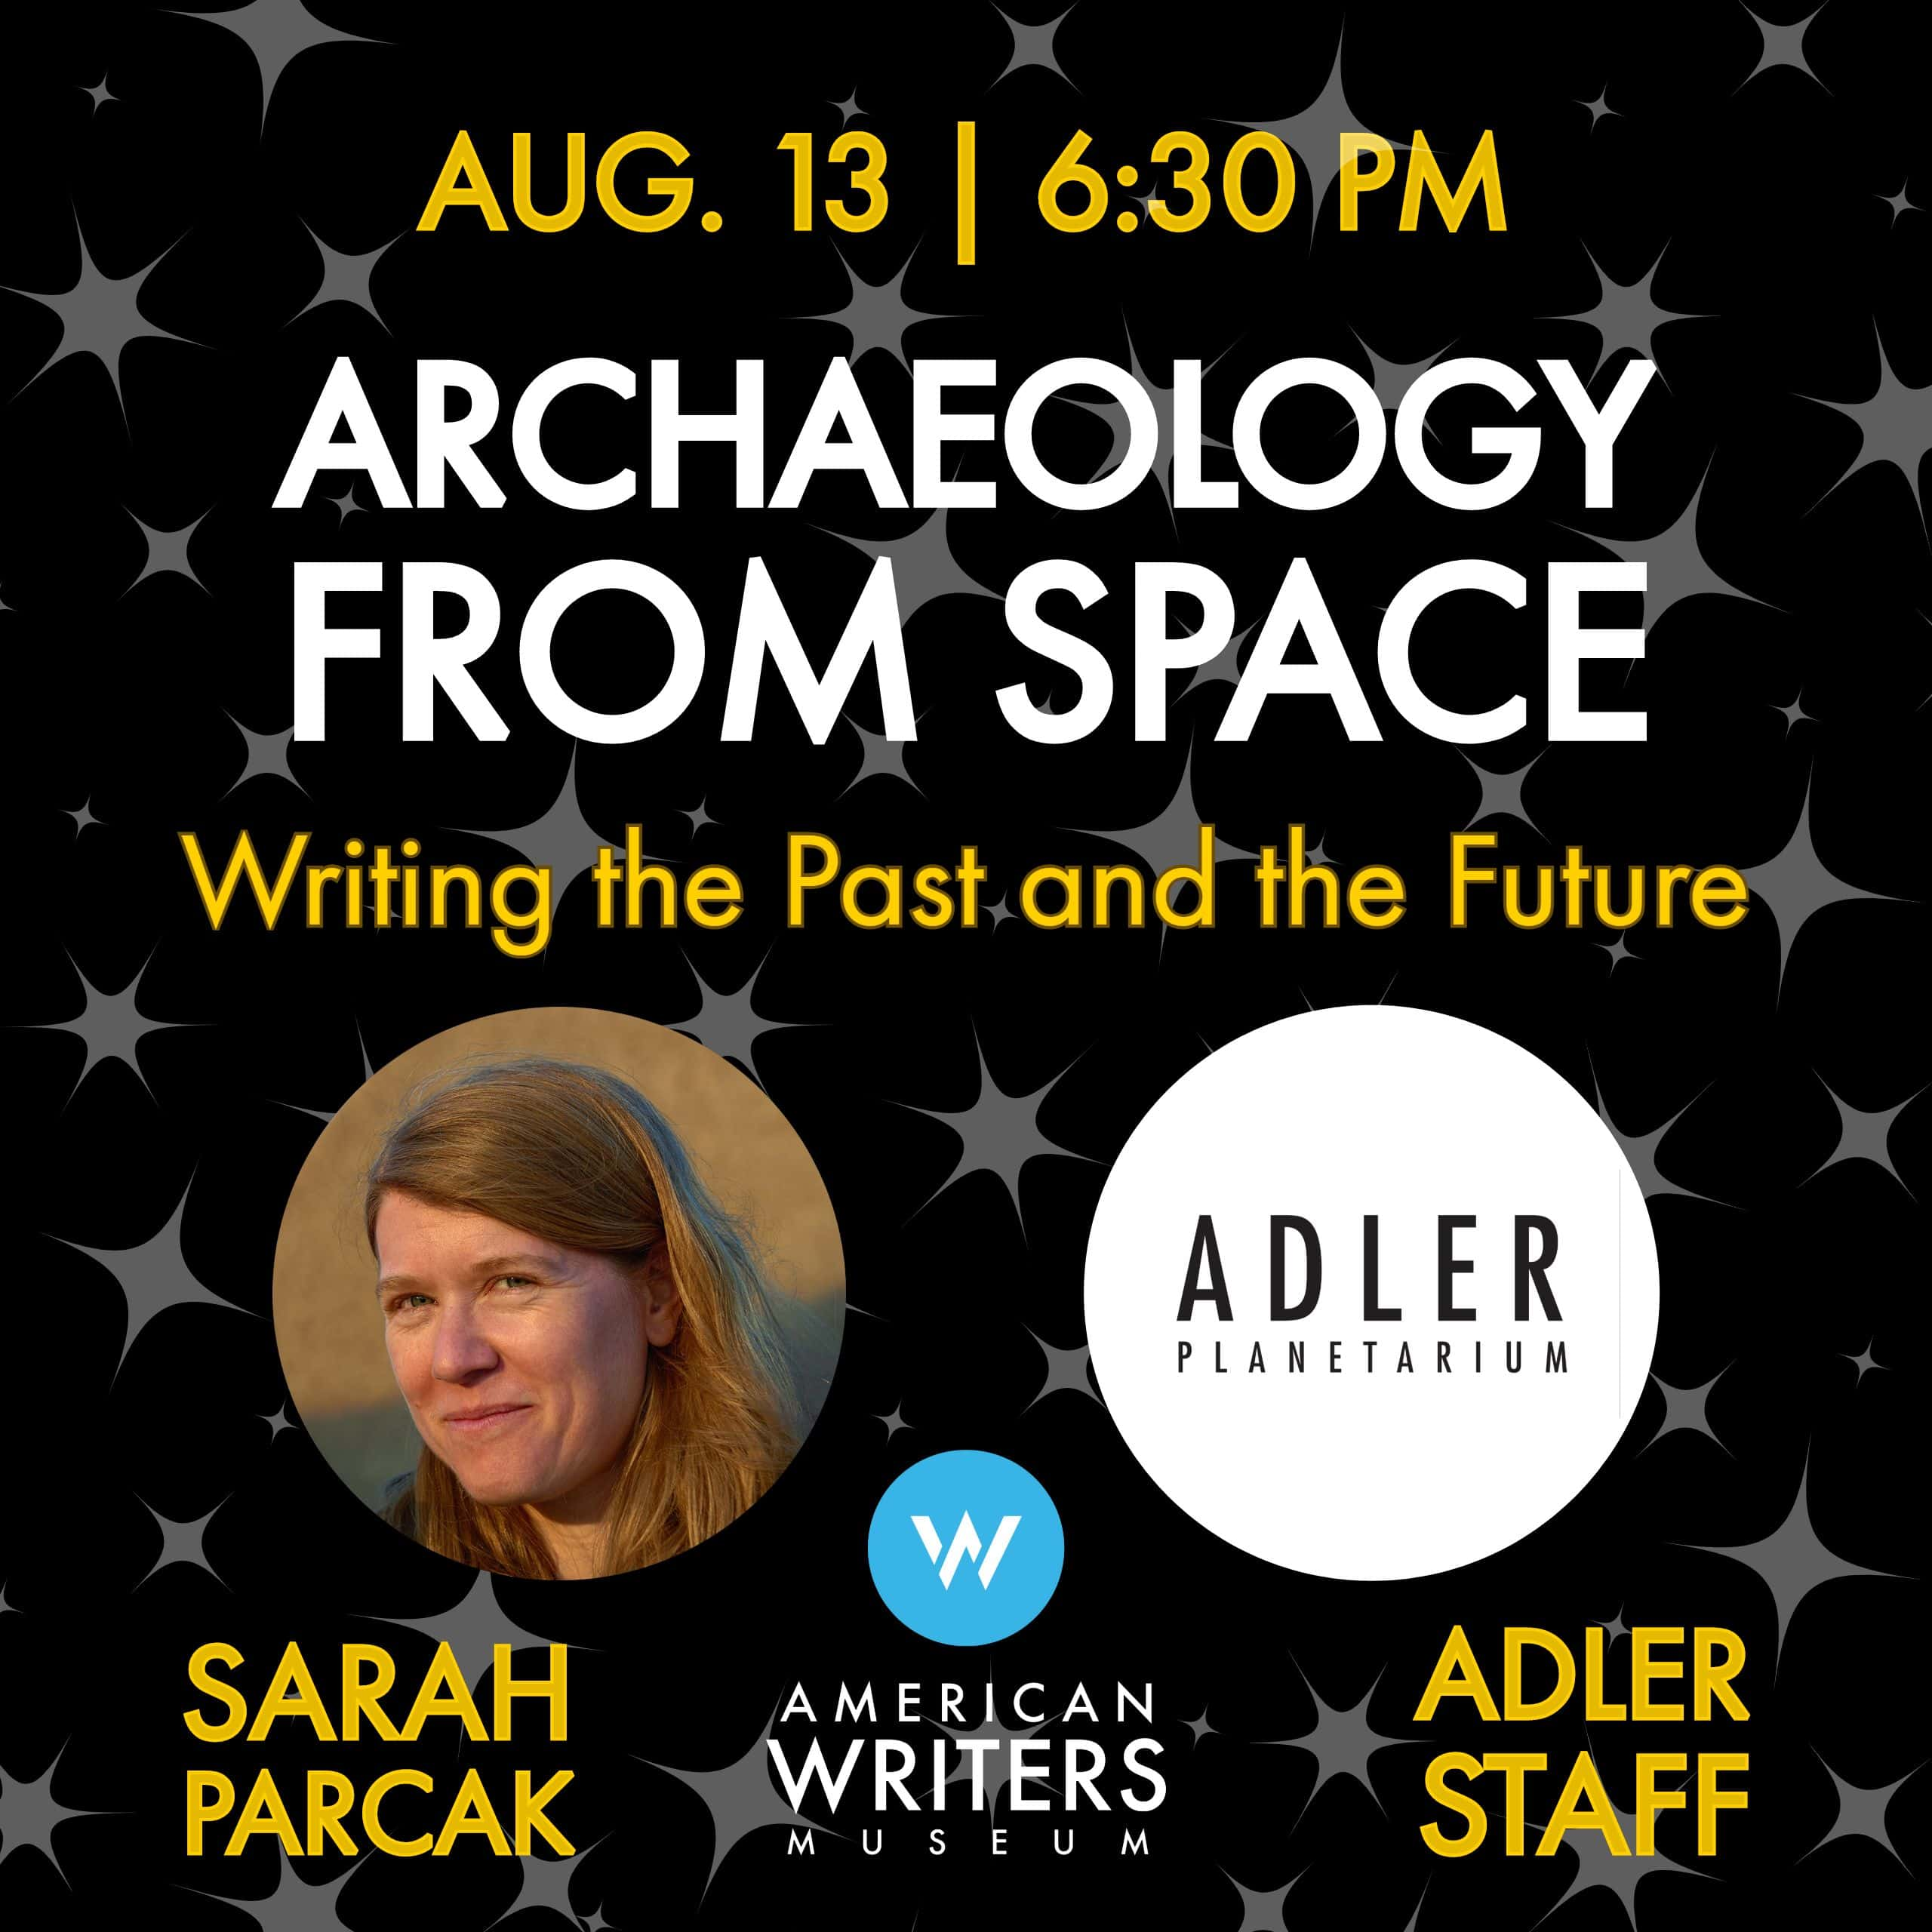 Sarah Parcak and Adler Planetarium astronomers at the American Writers Museum on August 13